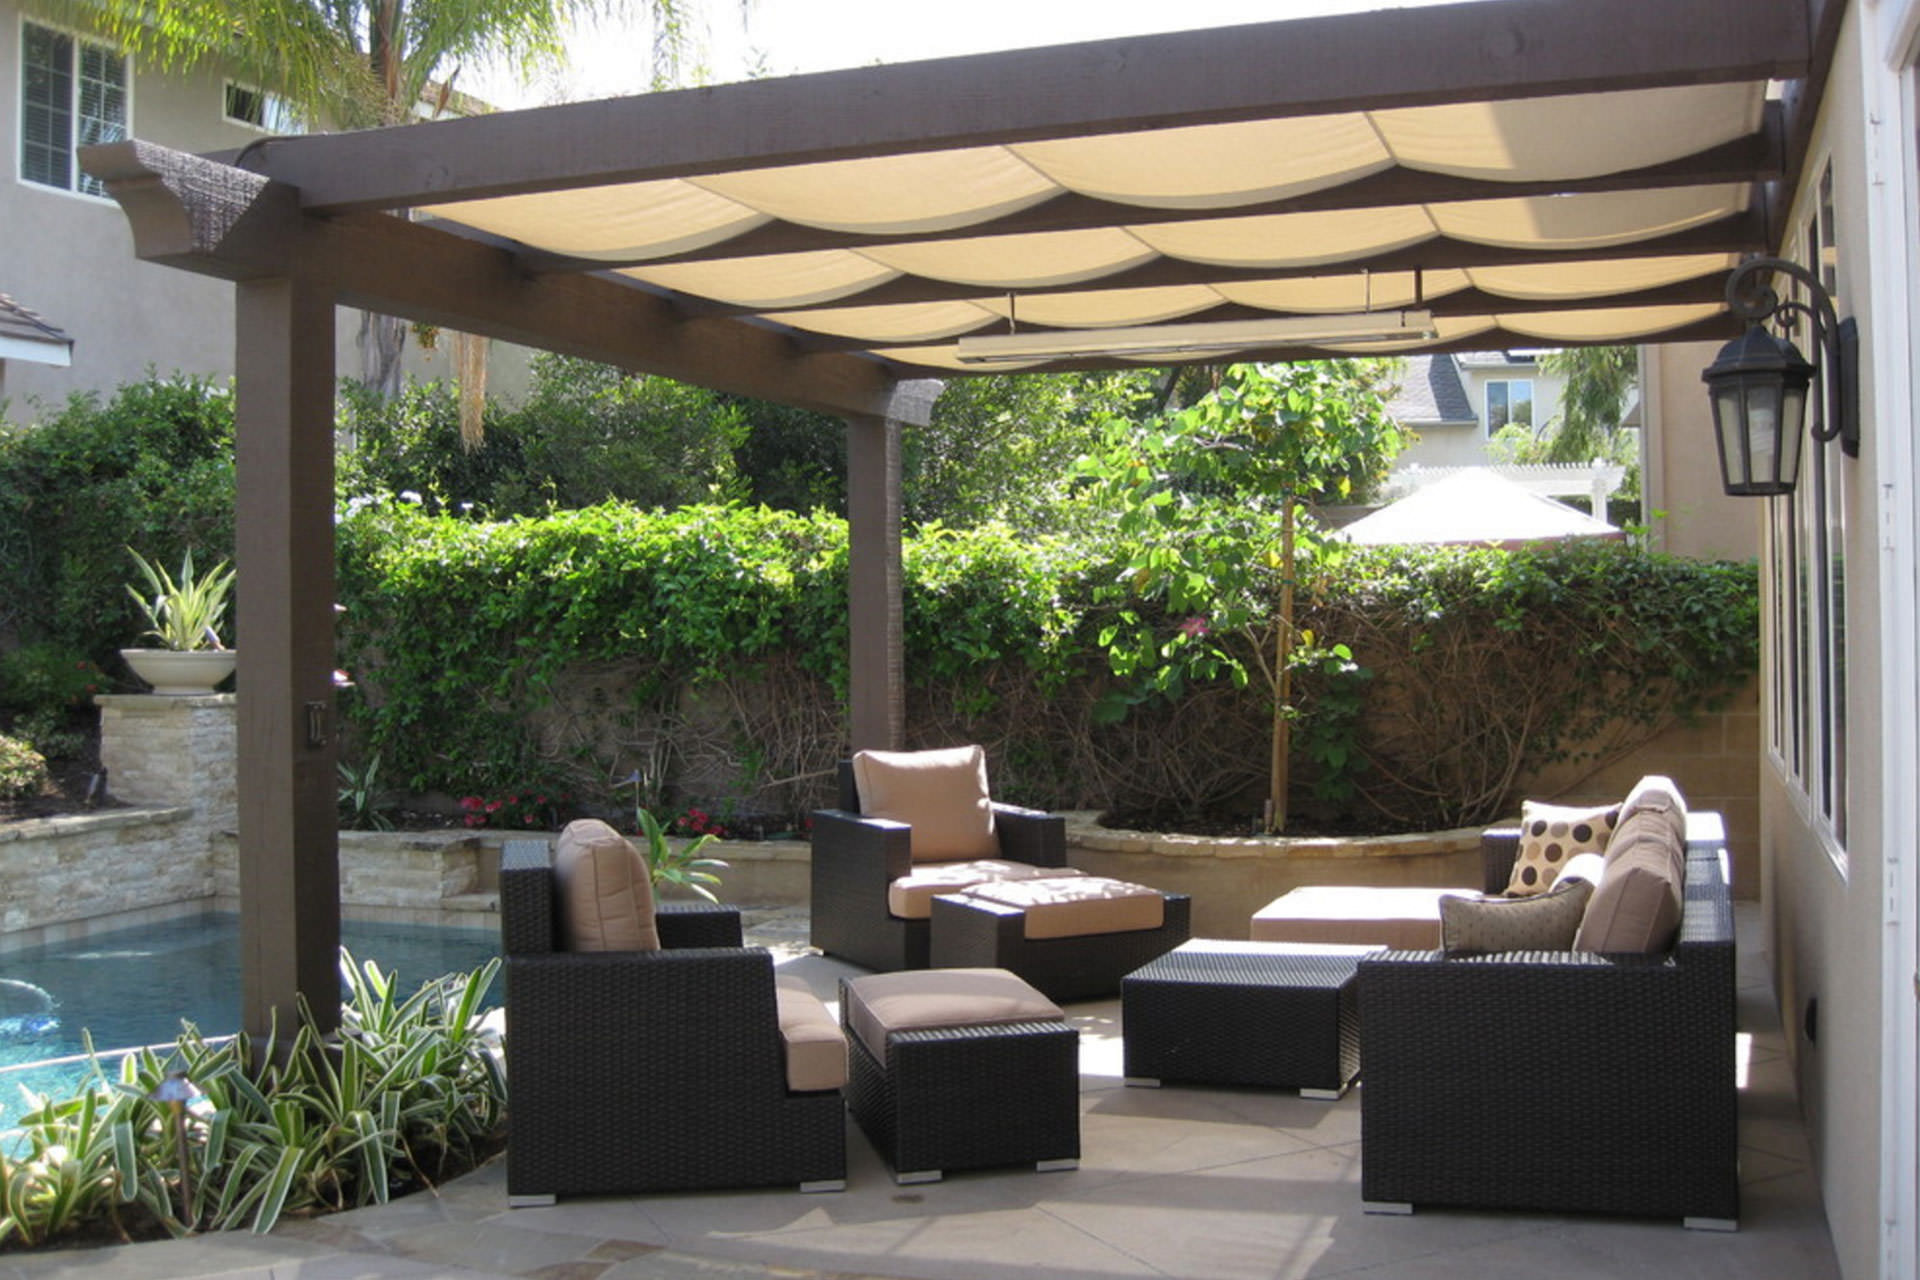 Pergola Shade: Pratical Solutions for Every Outdoor Space on Canvas Sun Shade Pergola id=50796